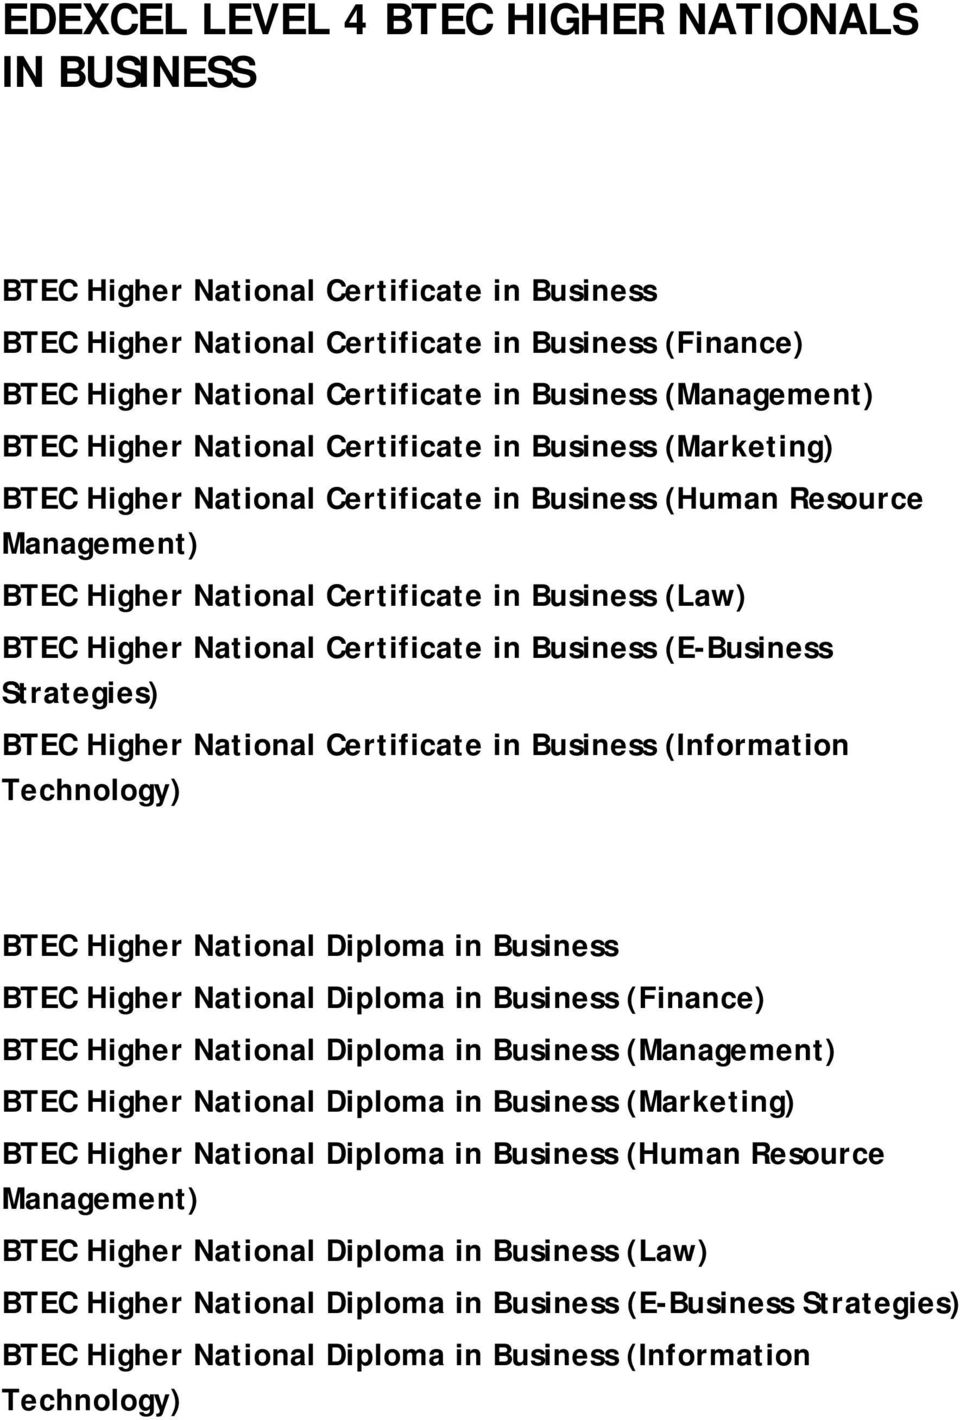 Higher National Certificate in Business (E-Business Strategies) BTEC Higher National Certificate in Business (Information Technology) BTEC Higher National Diploma in Business BTEC Higher National